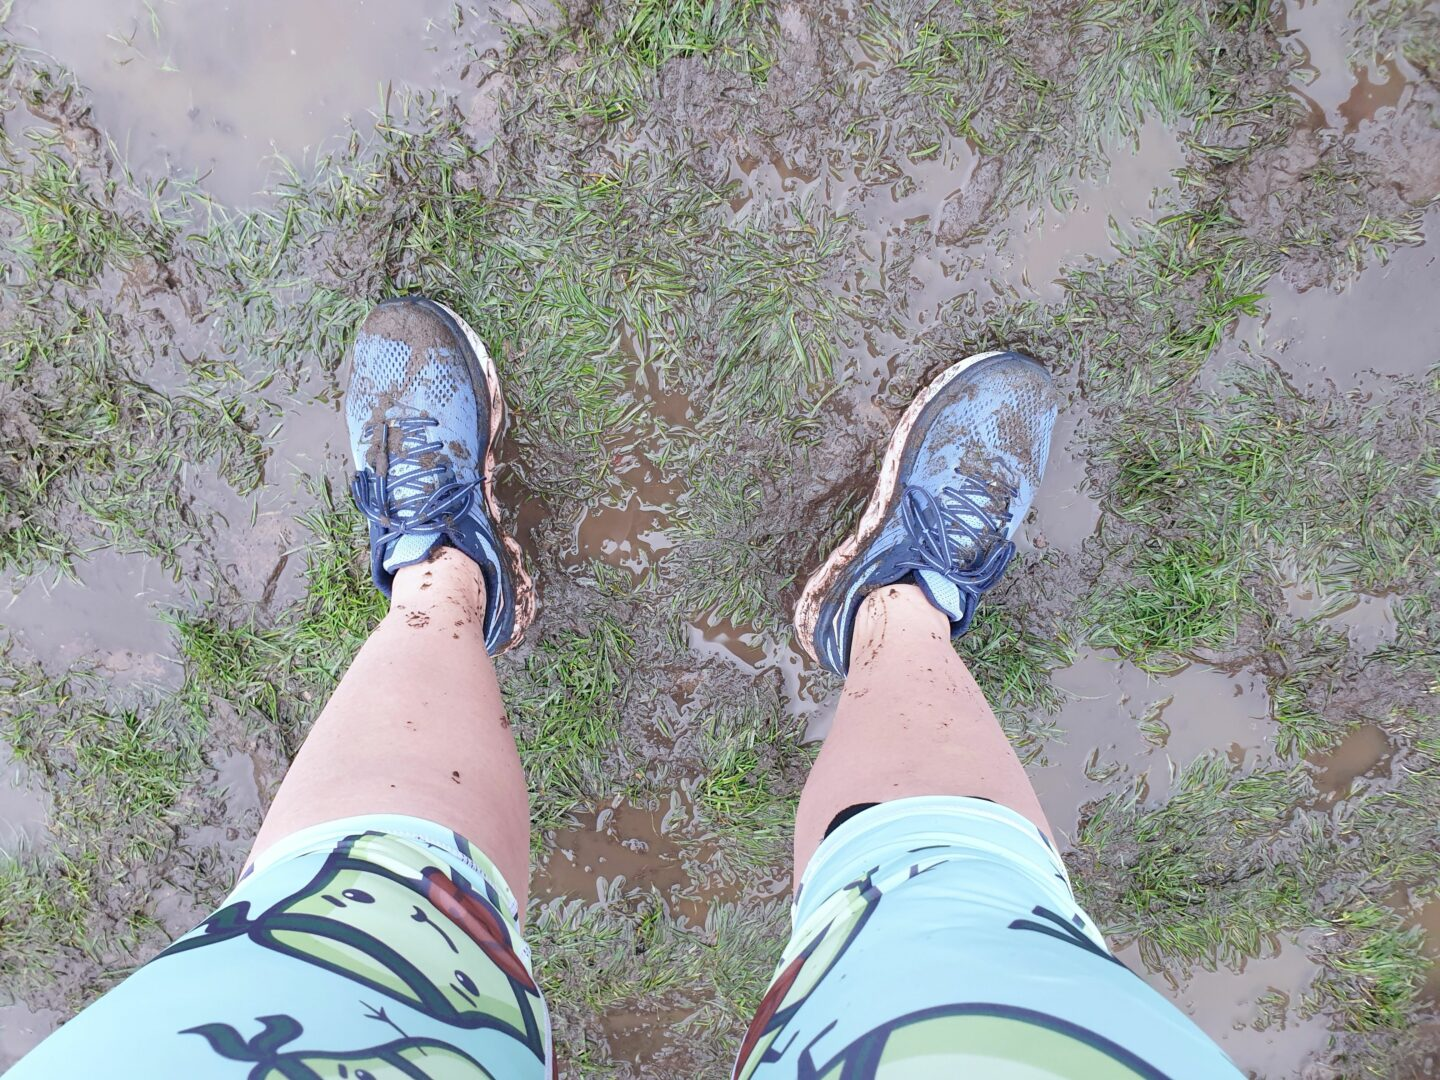 Muddy running shoes in muddy grass field